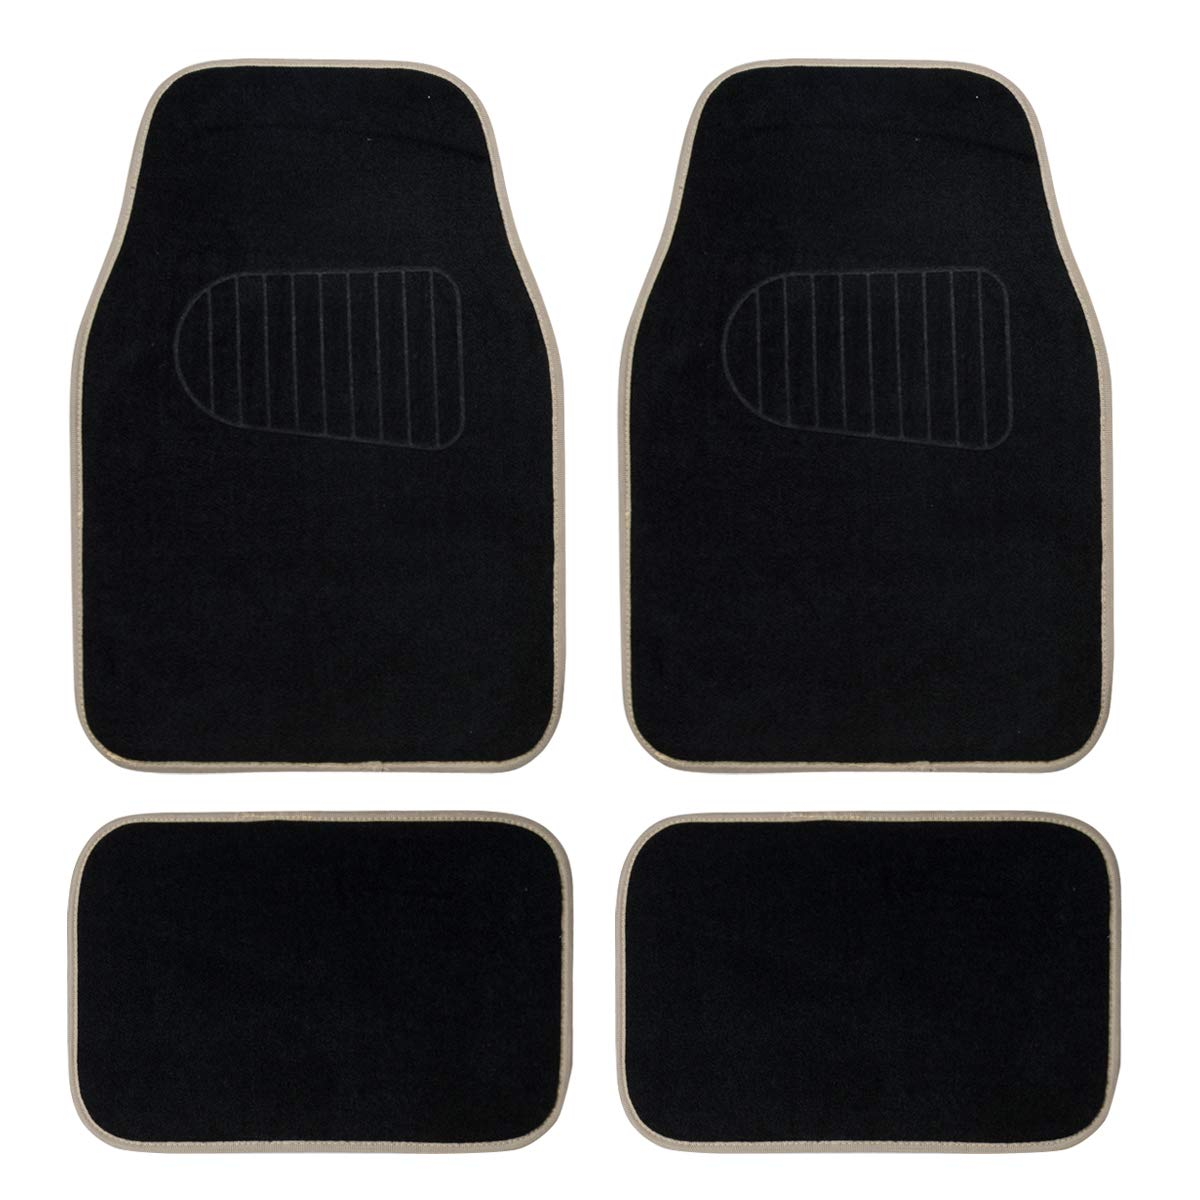 CAR PASS NEW ARRIVAL Universal Fit Car Floor Mat With Heel Pad ,Set Of 4 ,Black And Beige